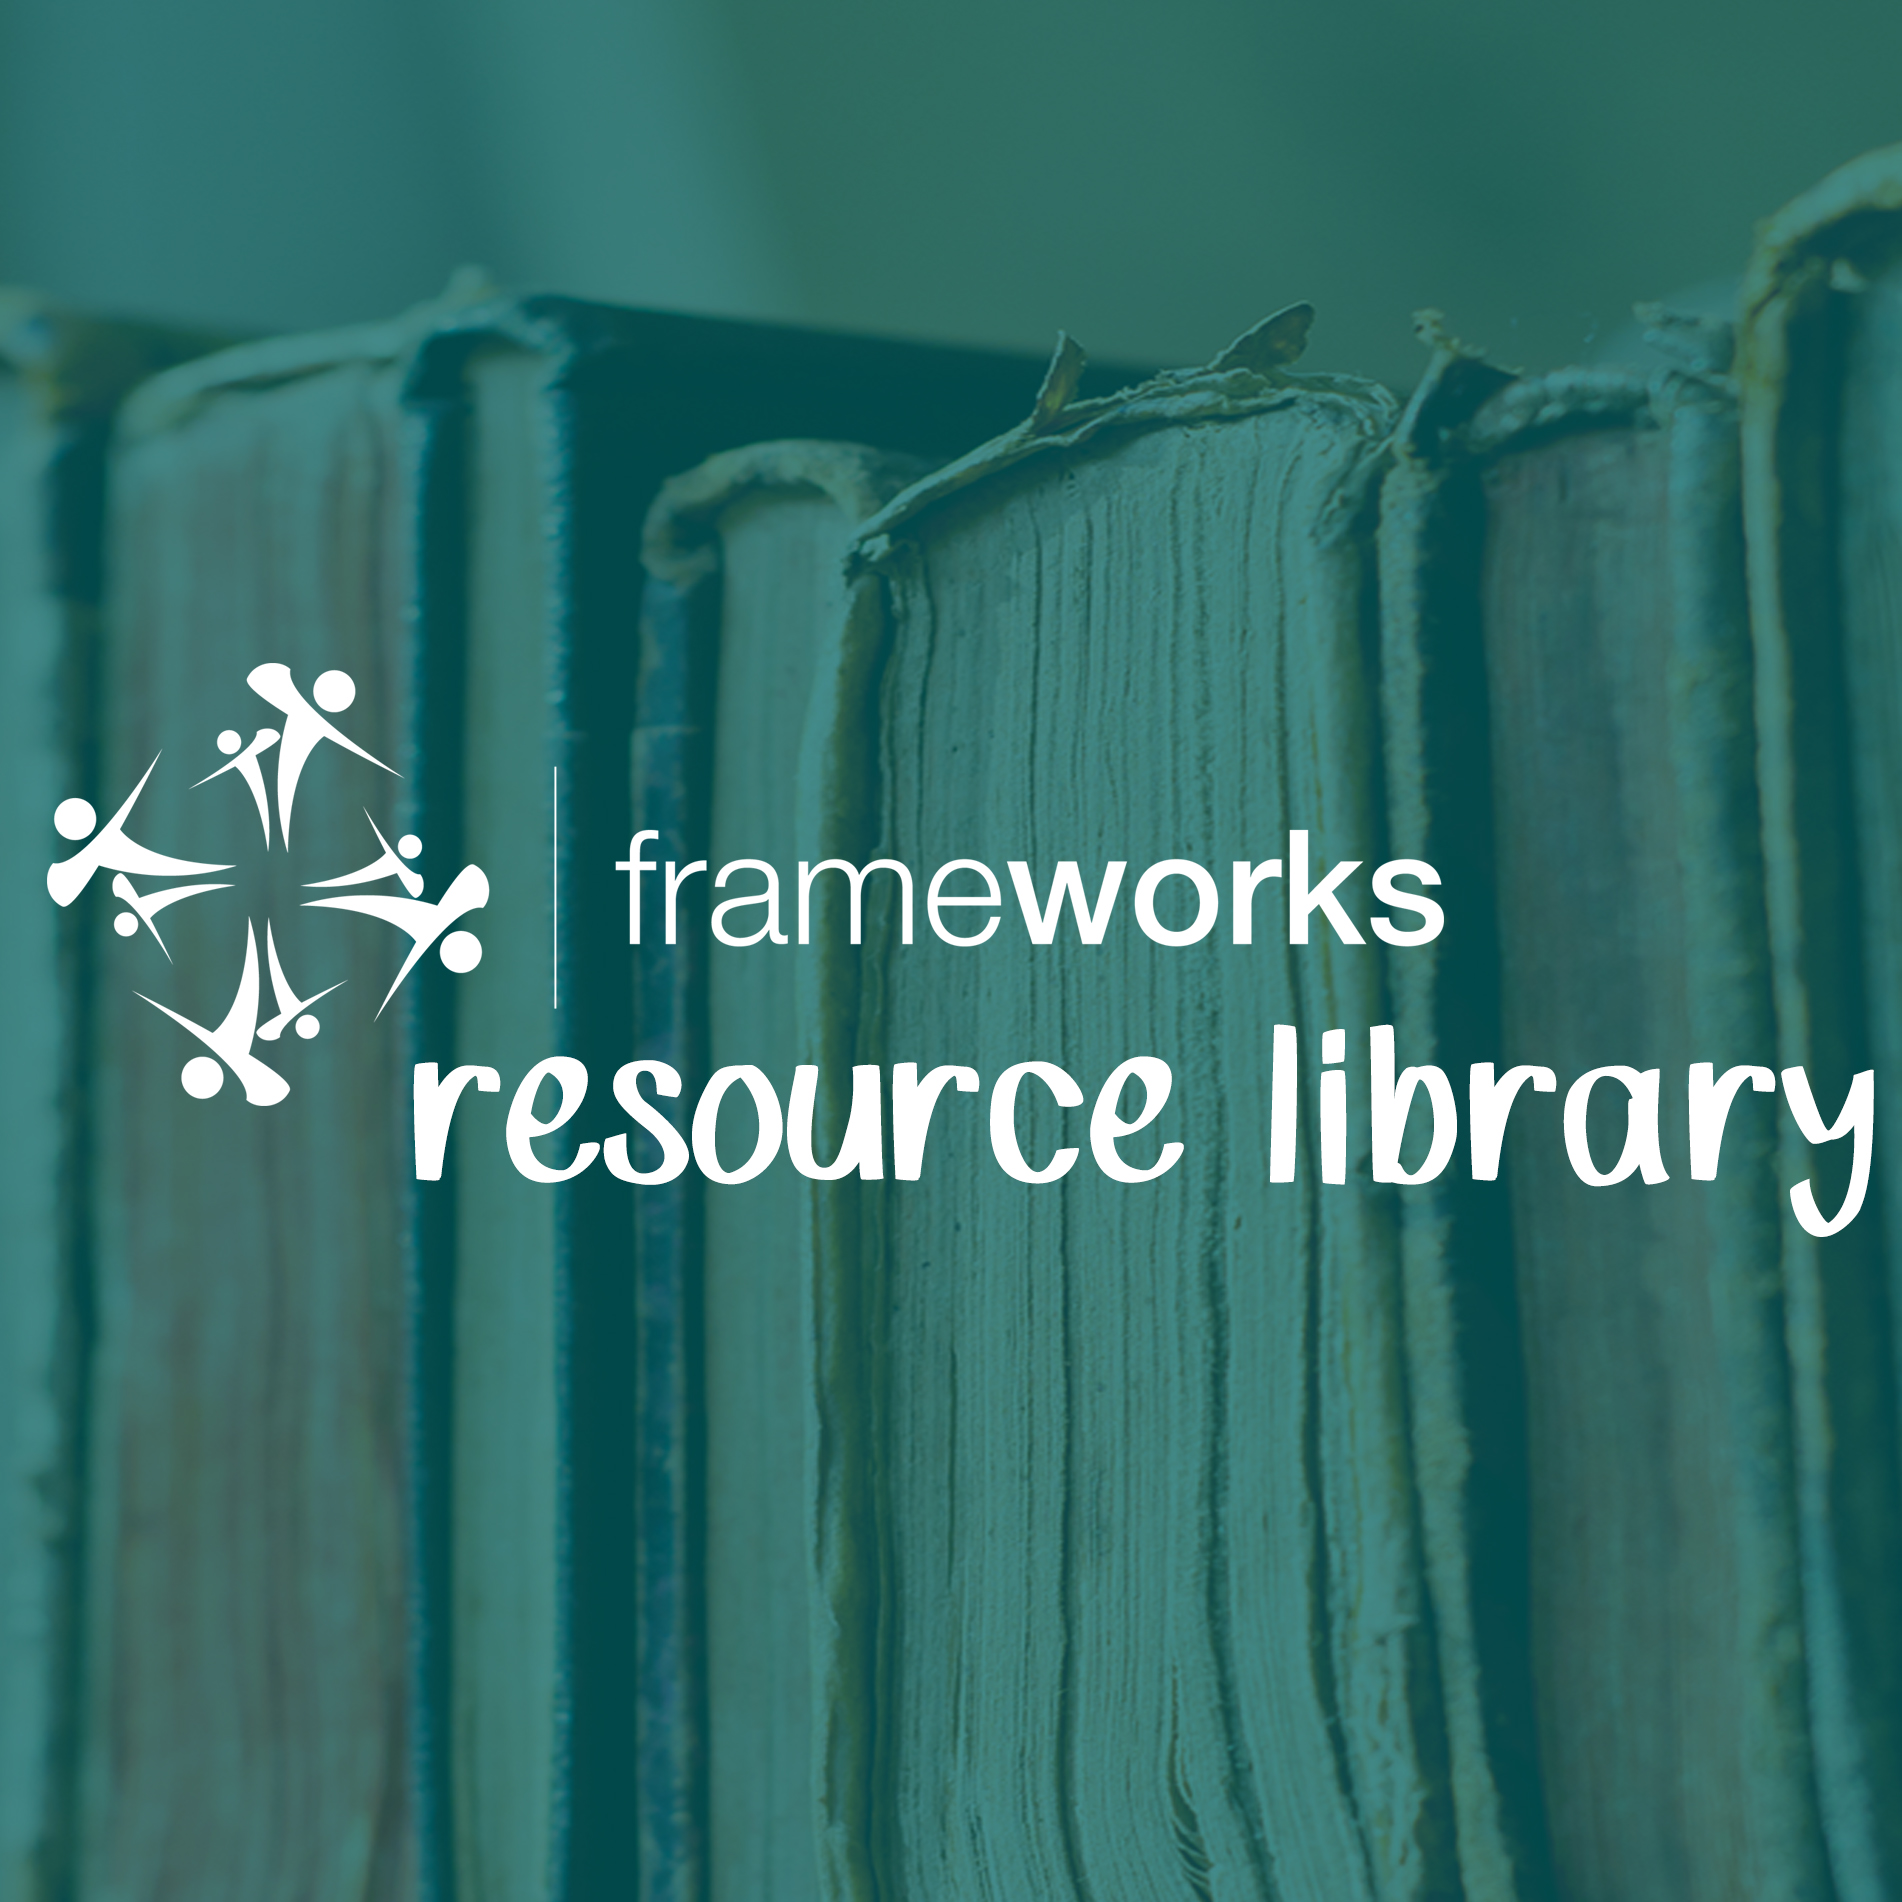 frameworks resource library thumbnail.jpg